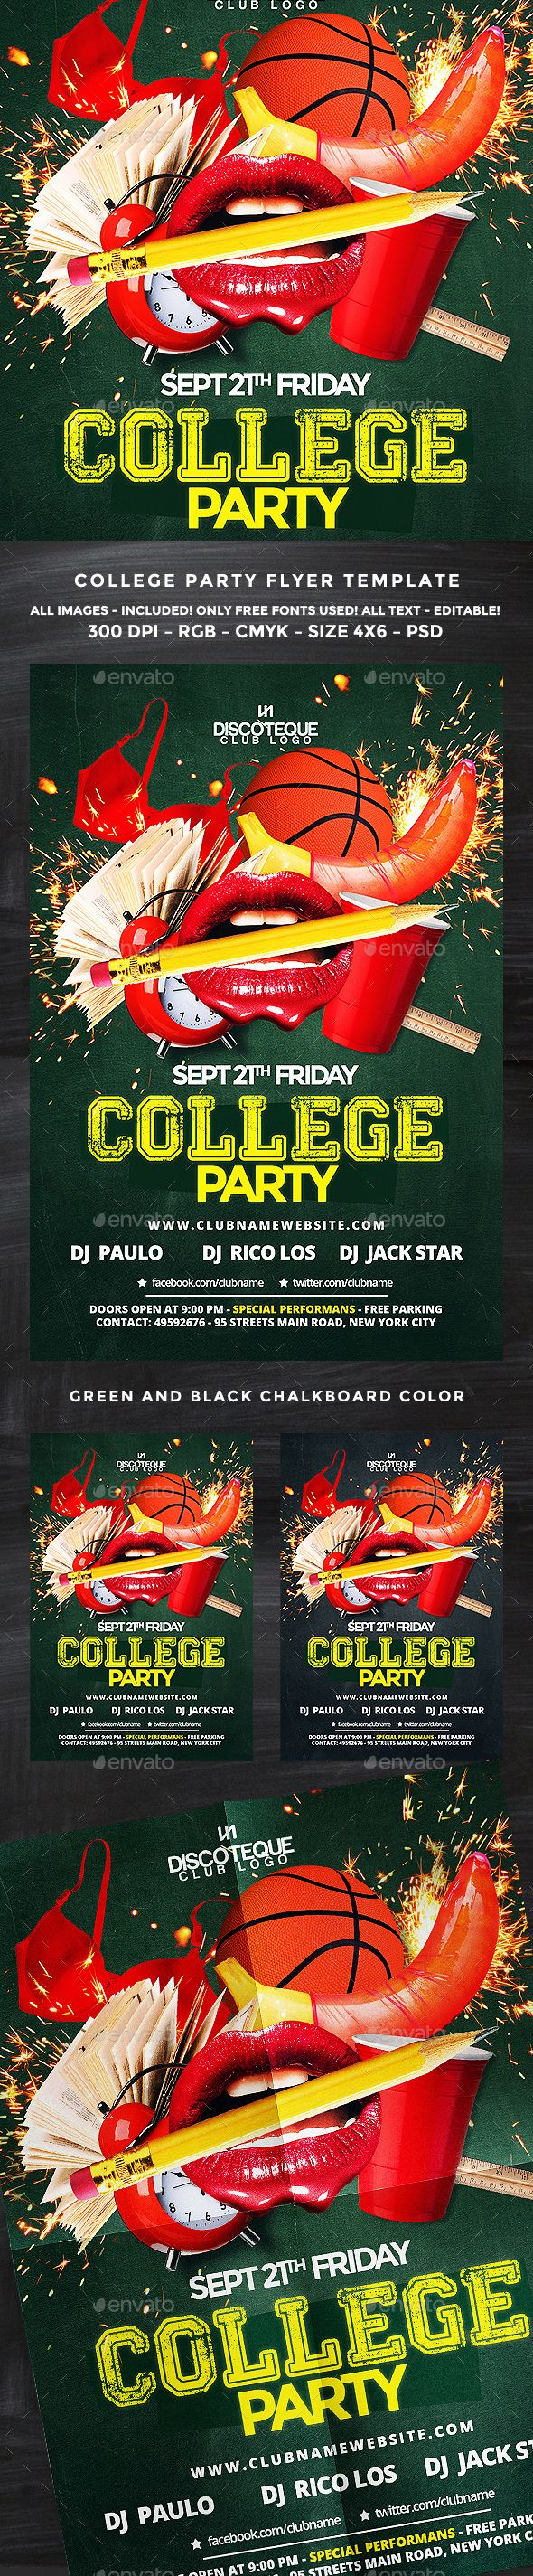 College Flyer | Flyer template, Template and Party flyer